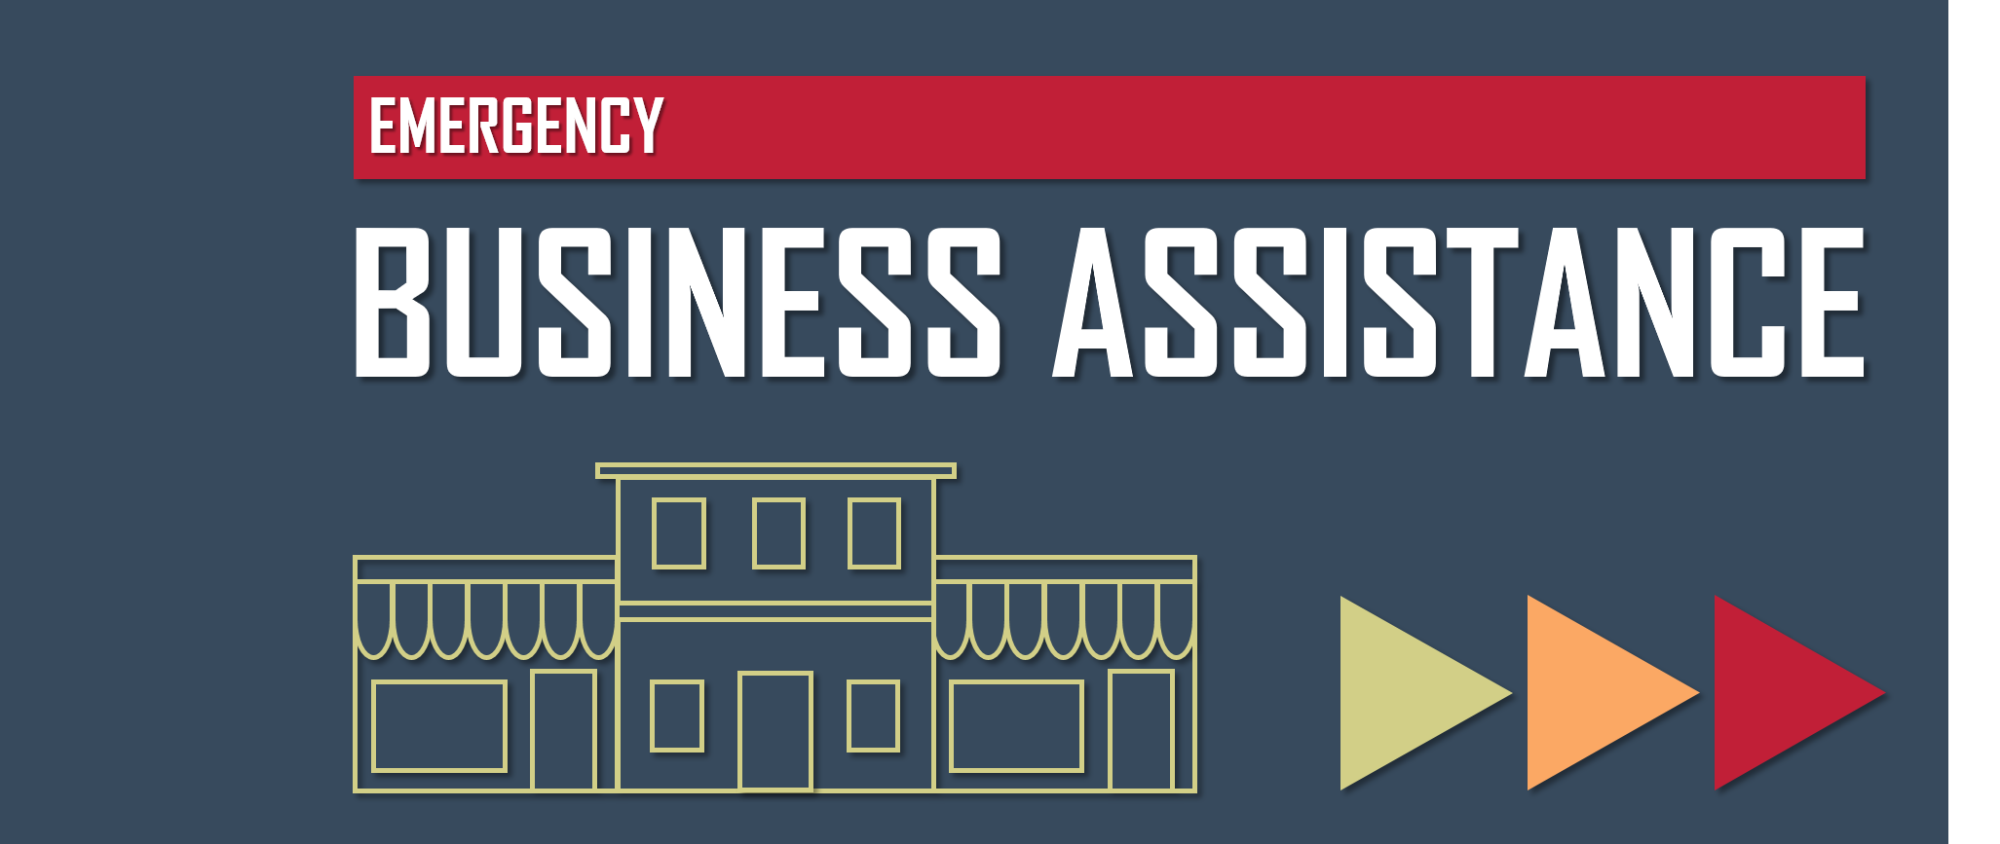 Emergency Business Assistance image